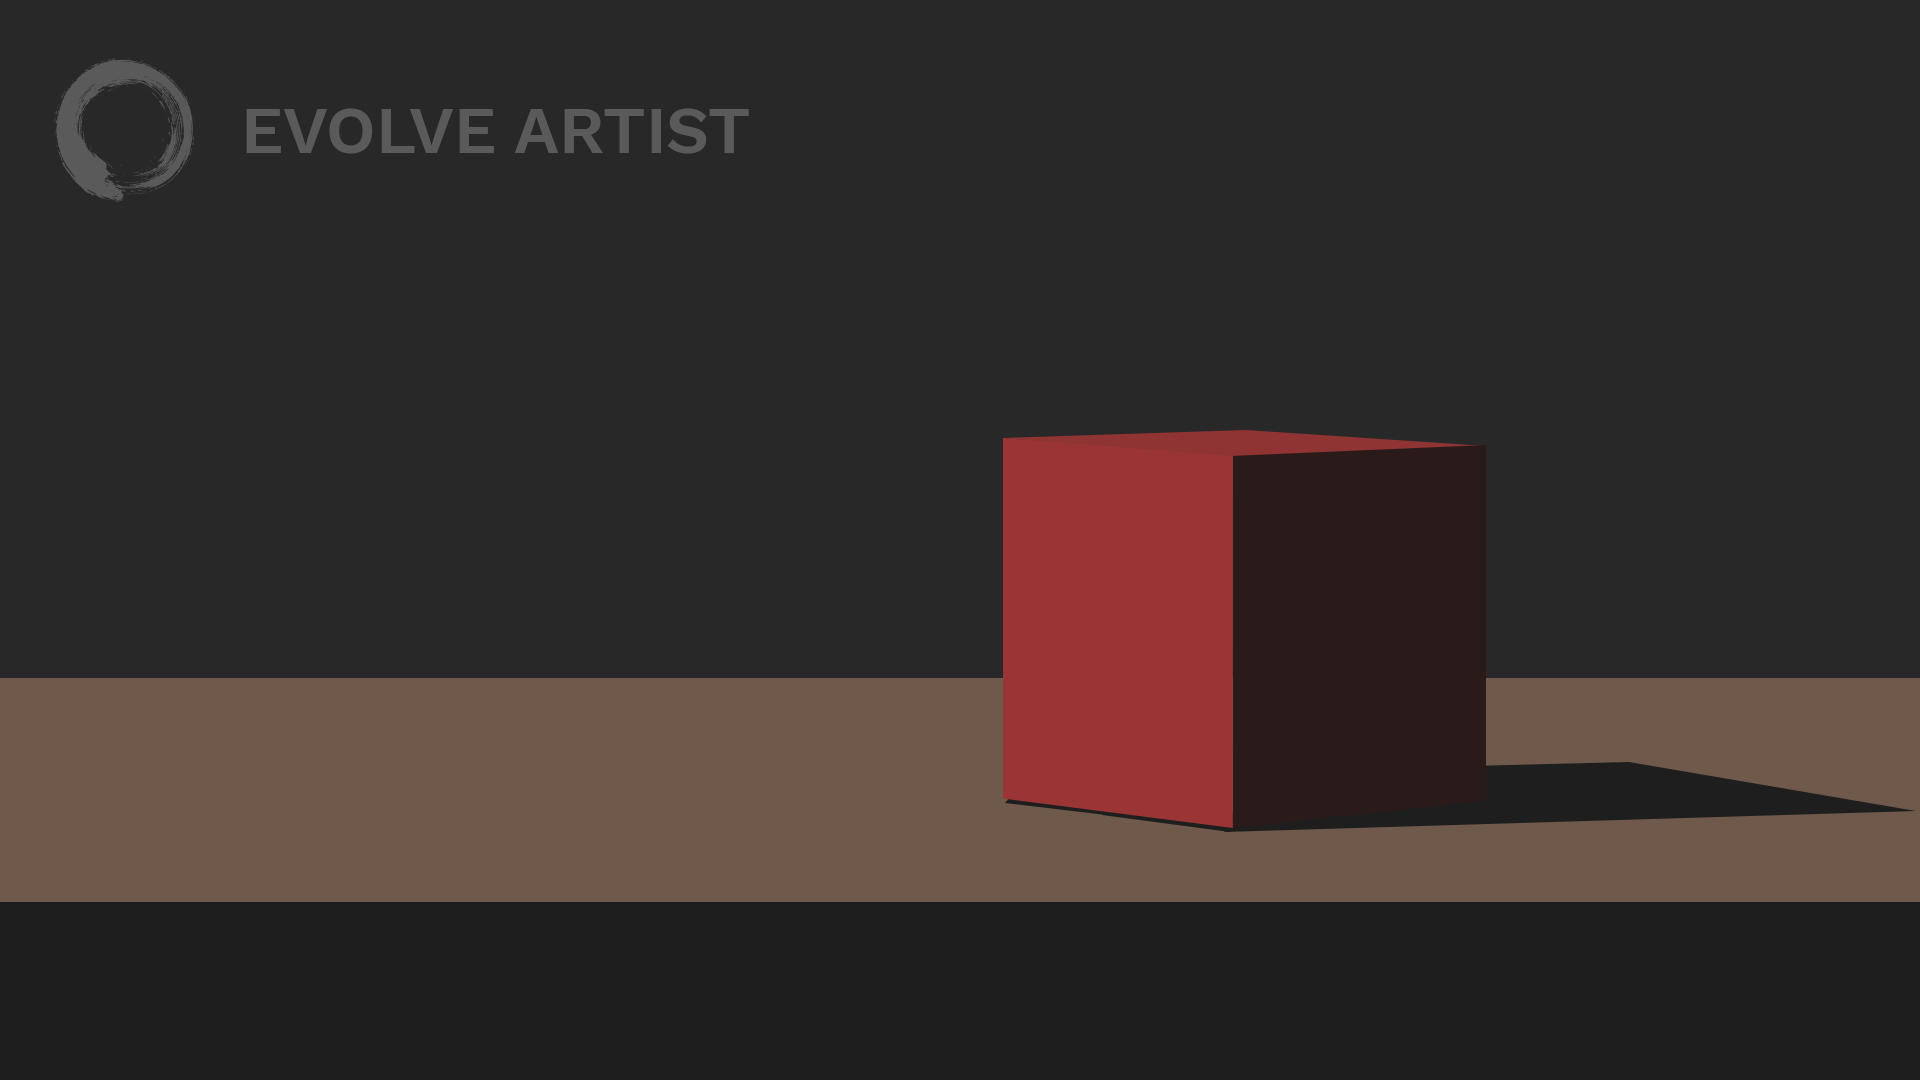 Structure is more important than details in this simple image of a cube as well as when you simplify portrait painting